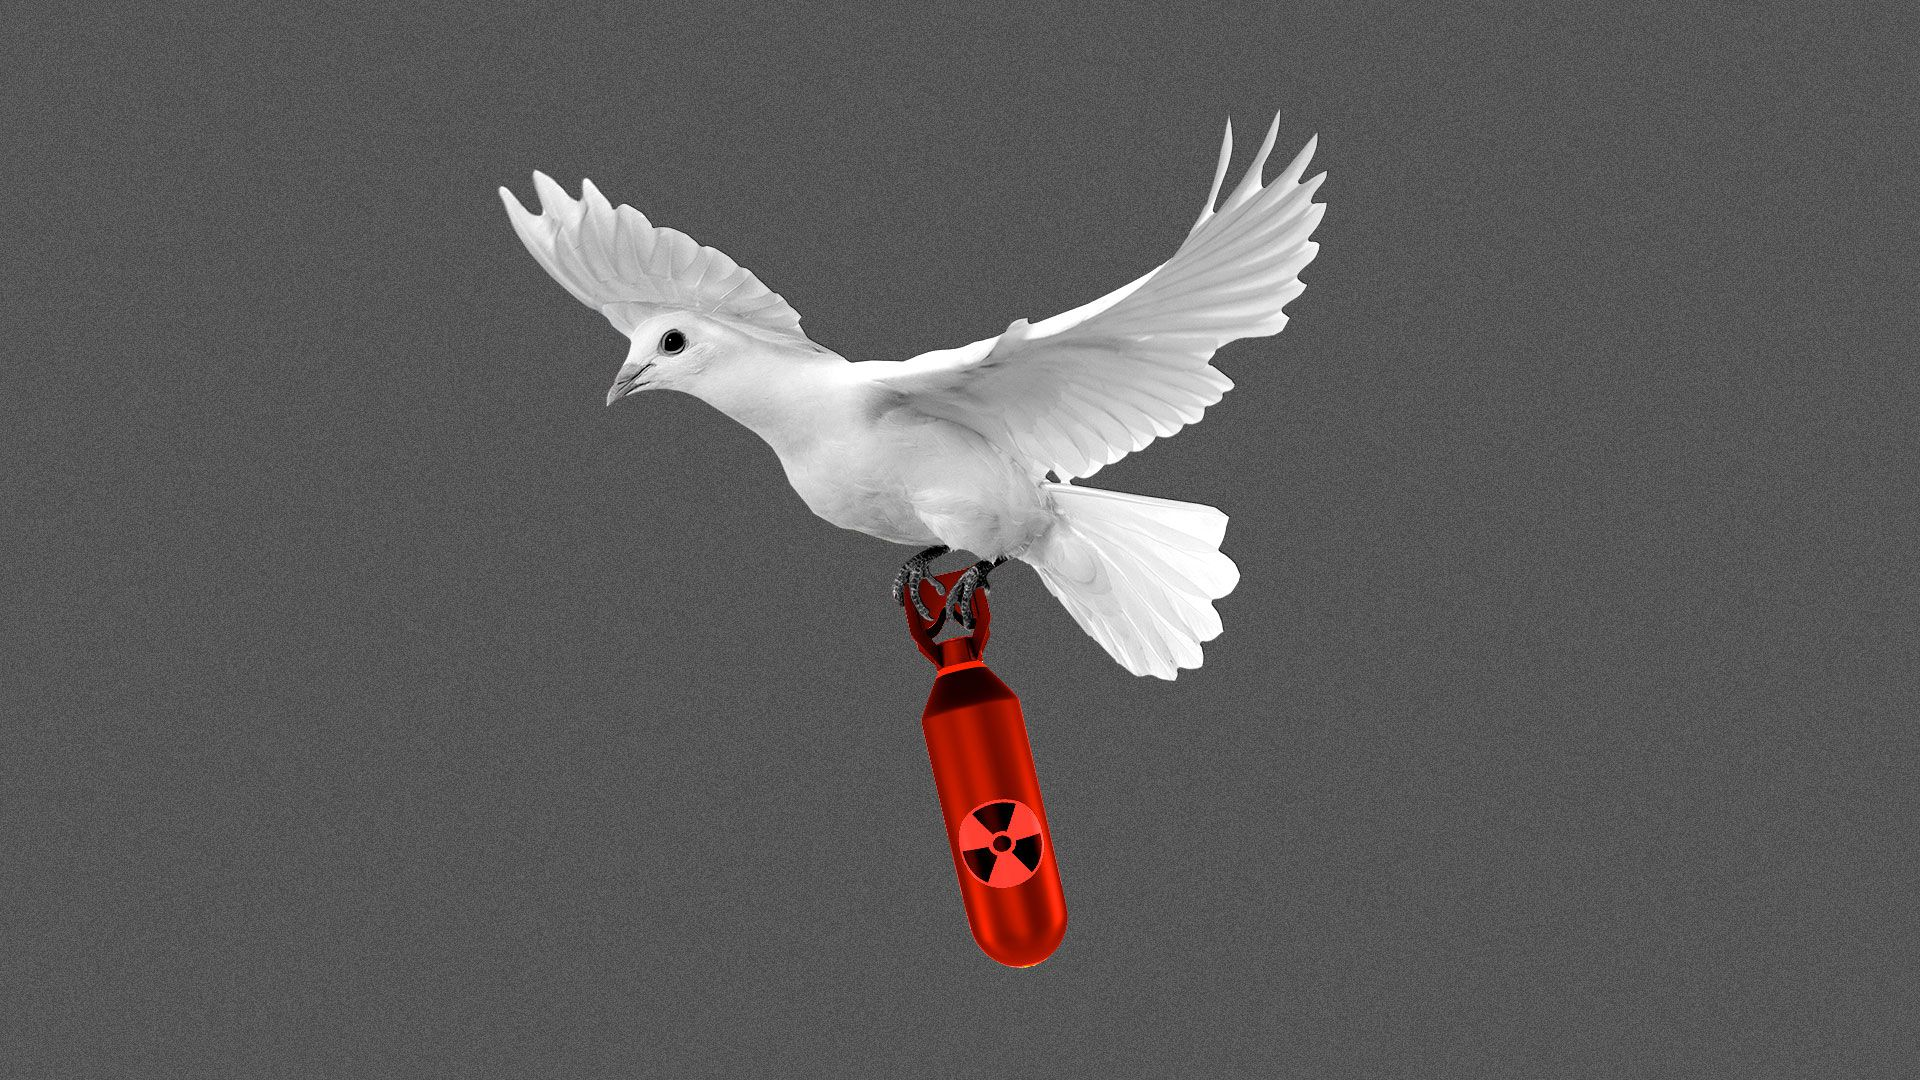 Illustration of a white dove carrying a nuclear bomb.